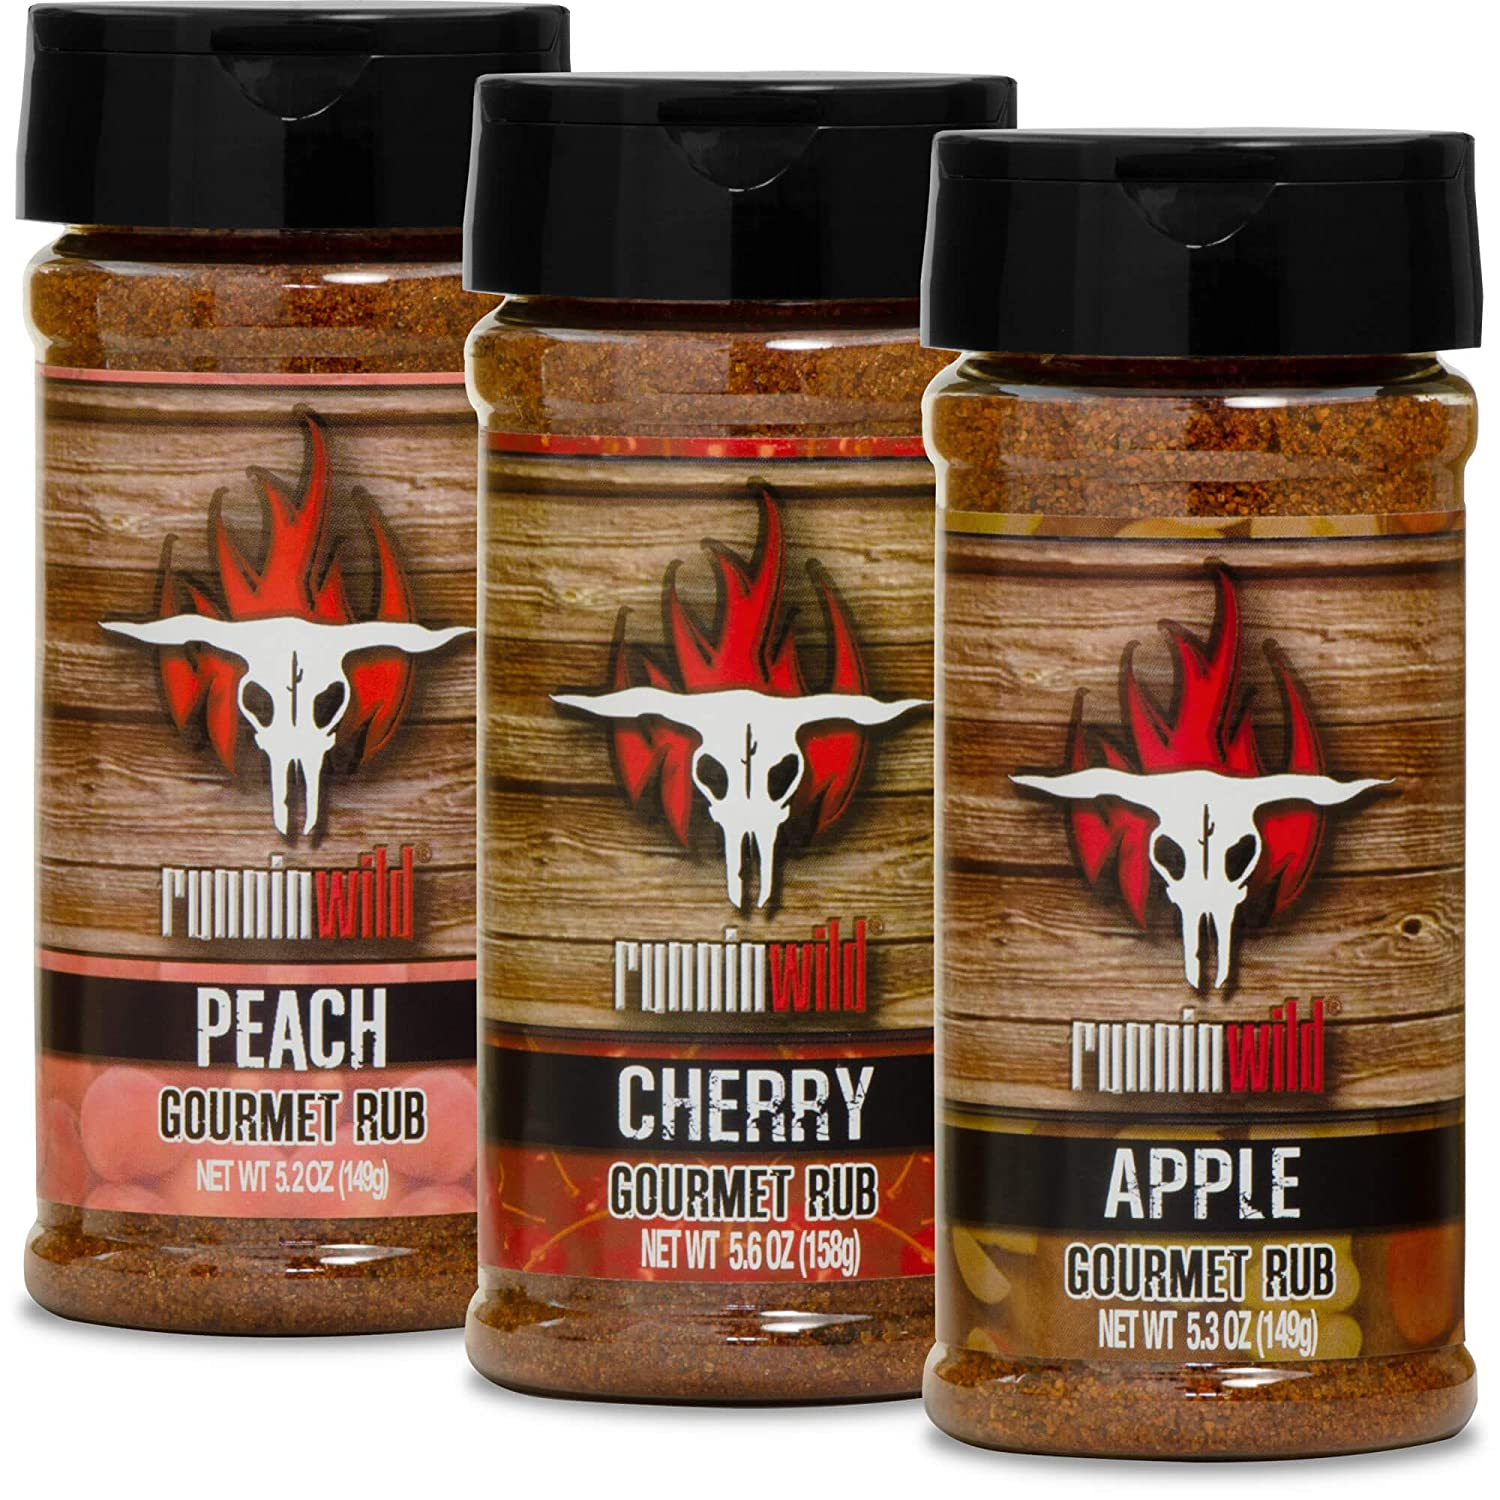 Full Fruits Seasoning Kit, Peach, Apple, and Cherry | Made in the USA | Premium Rubs and Spices for Meats and Veggies | Runnin' Wild Foods